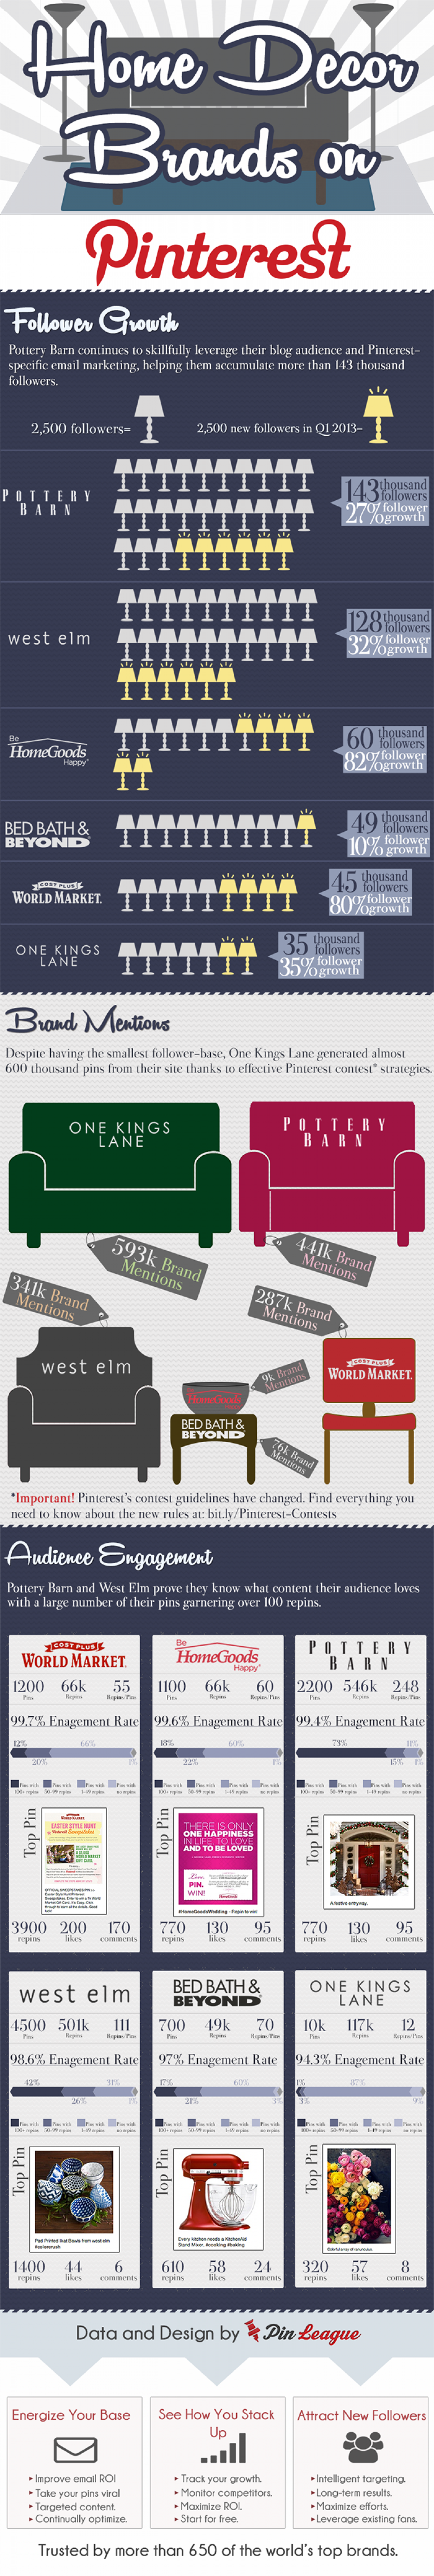 How 3 Brands Owned the Pinterest Home Decor Category Infographic